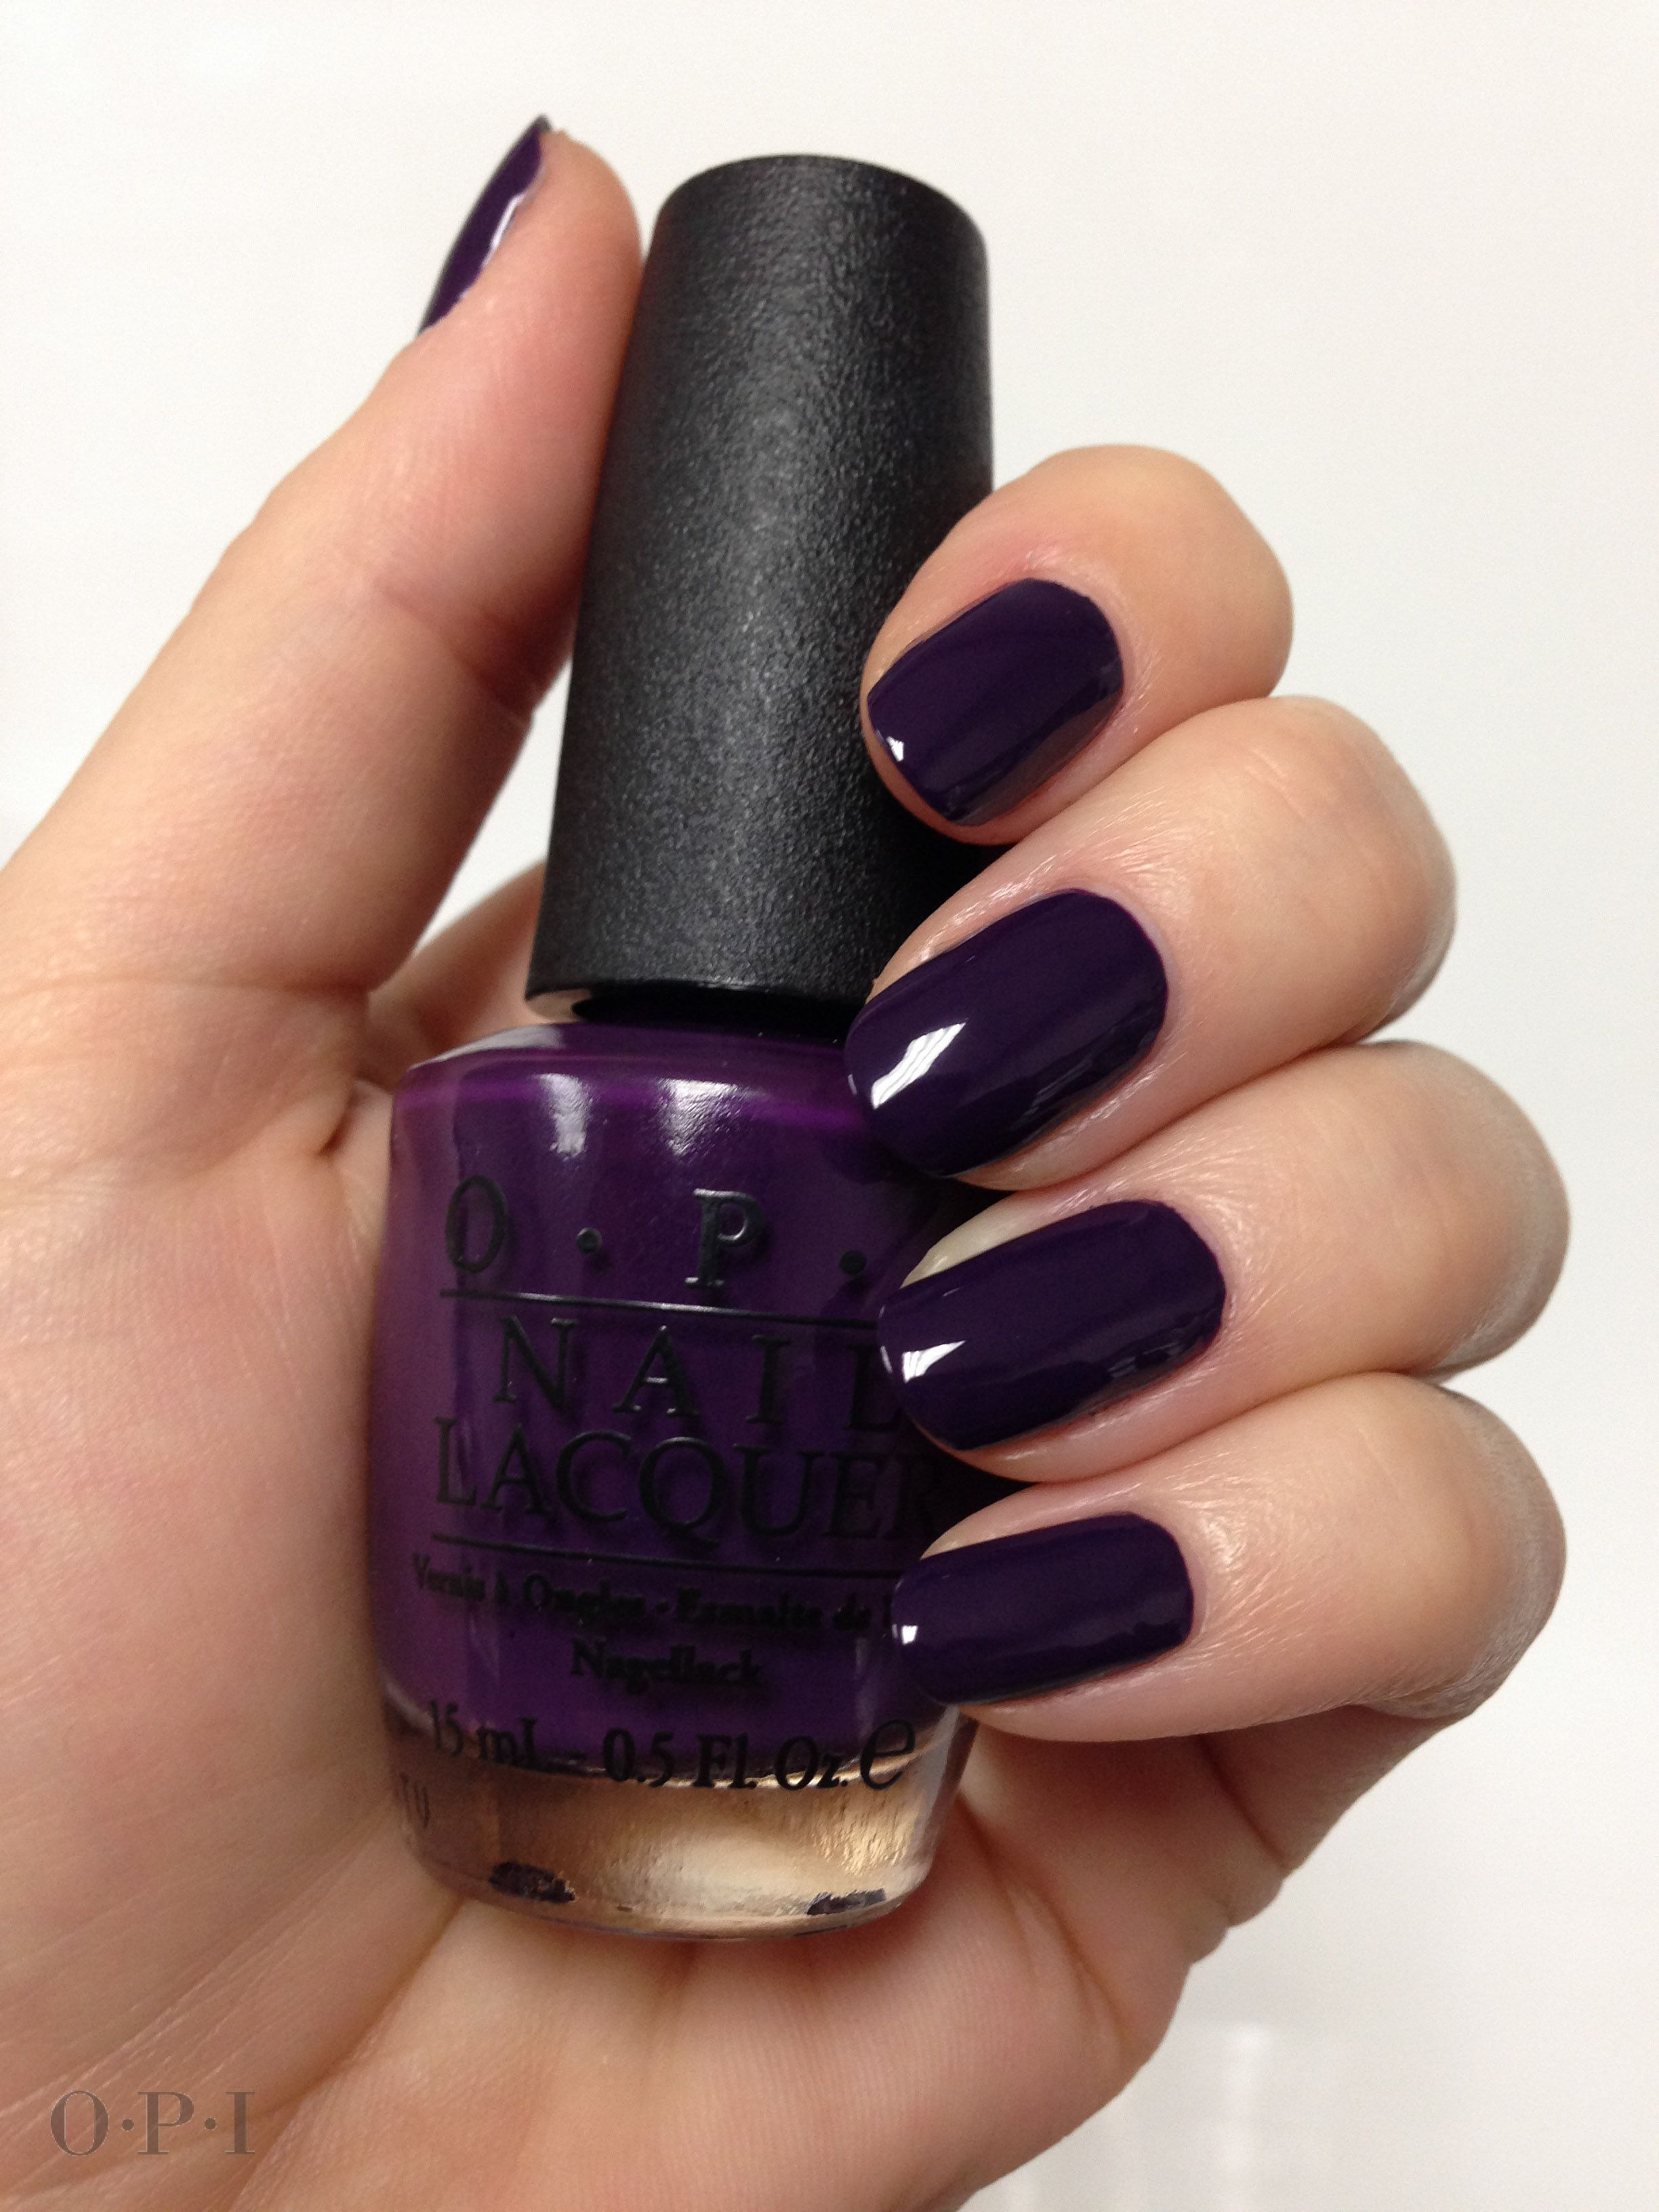 Vant To Bite My Neck? #OPIEuroCentrale Nice deep purple color! Love ...